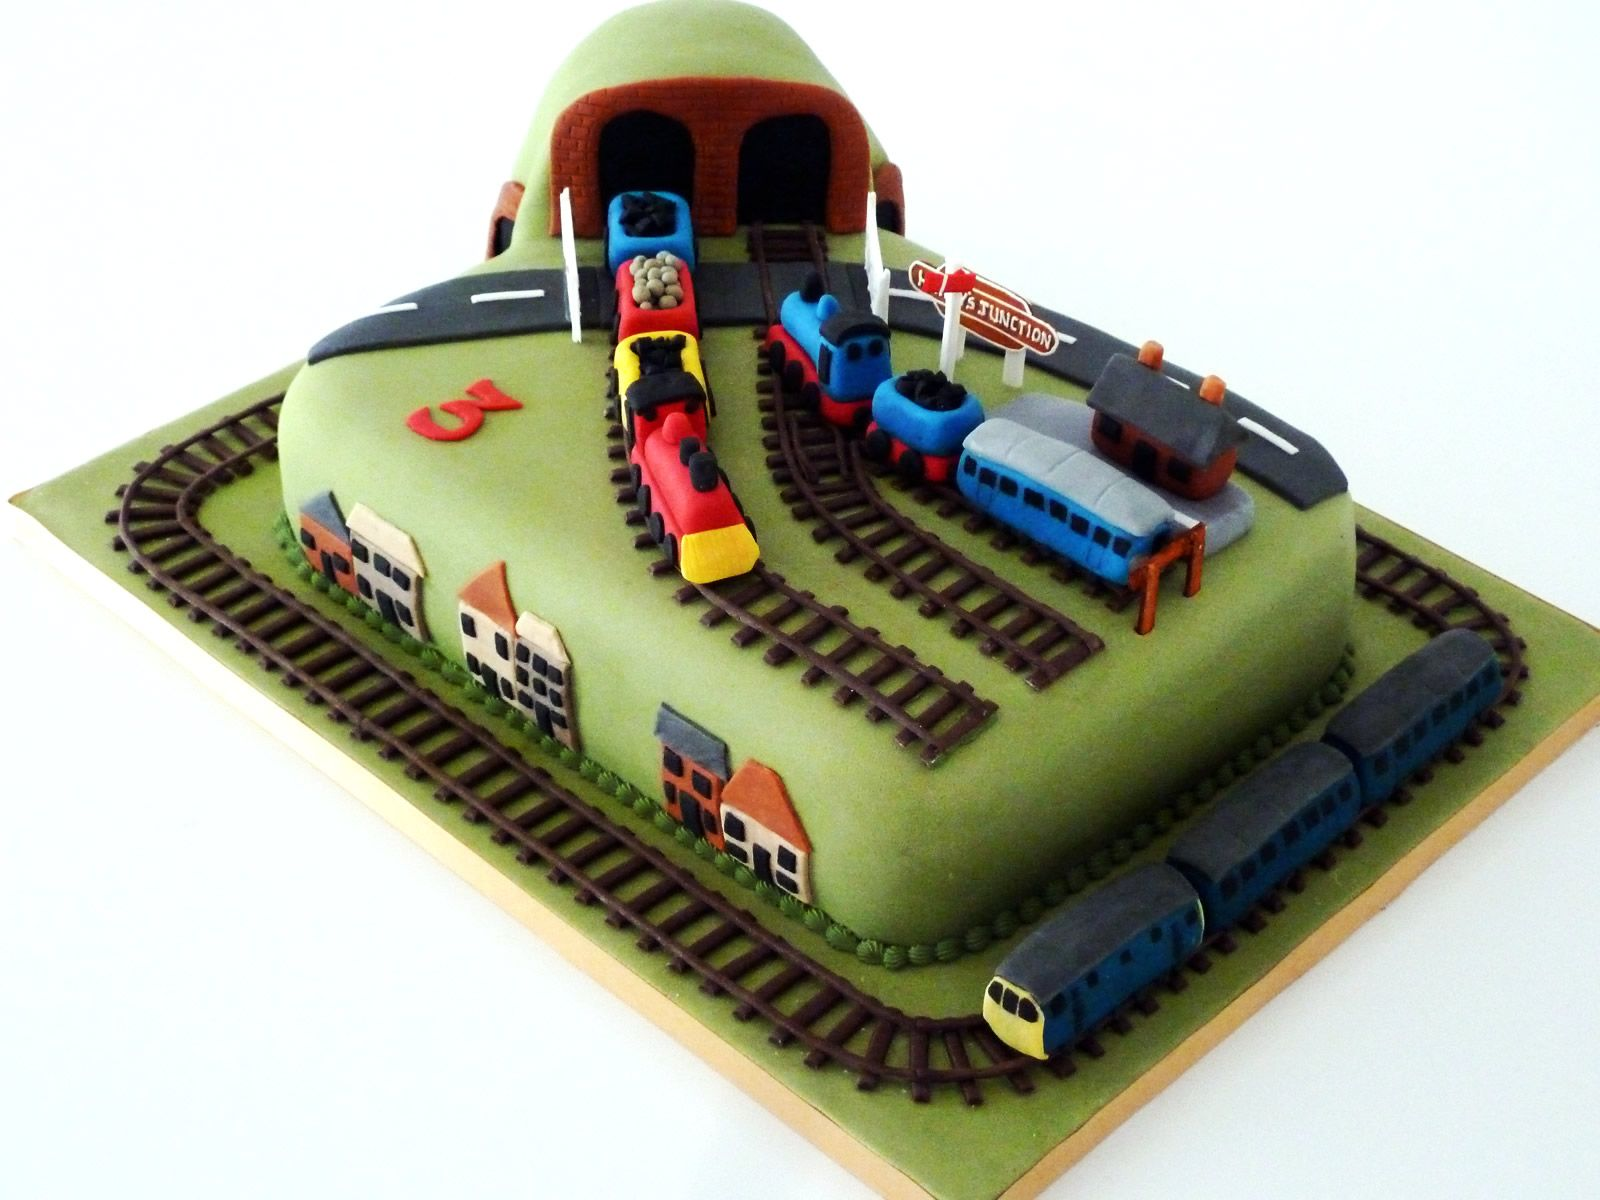 What Three Year Old Boy Wouldn T Want A Birthday Cake Like